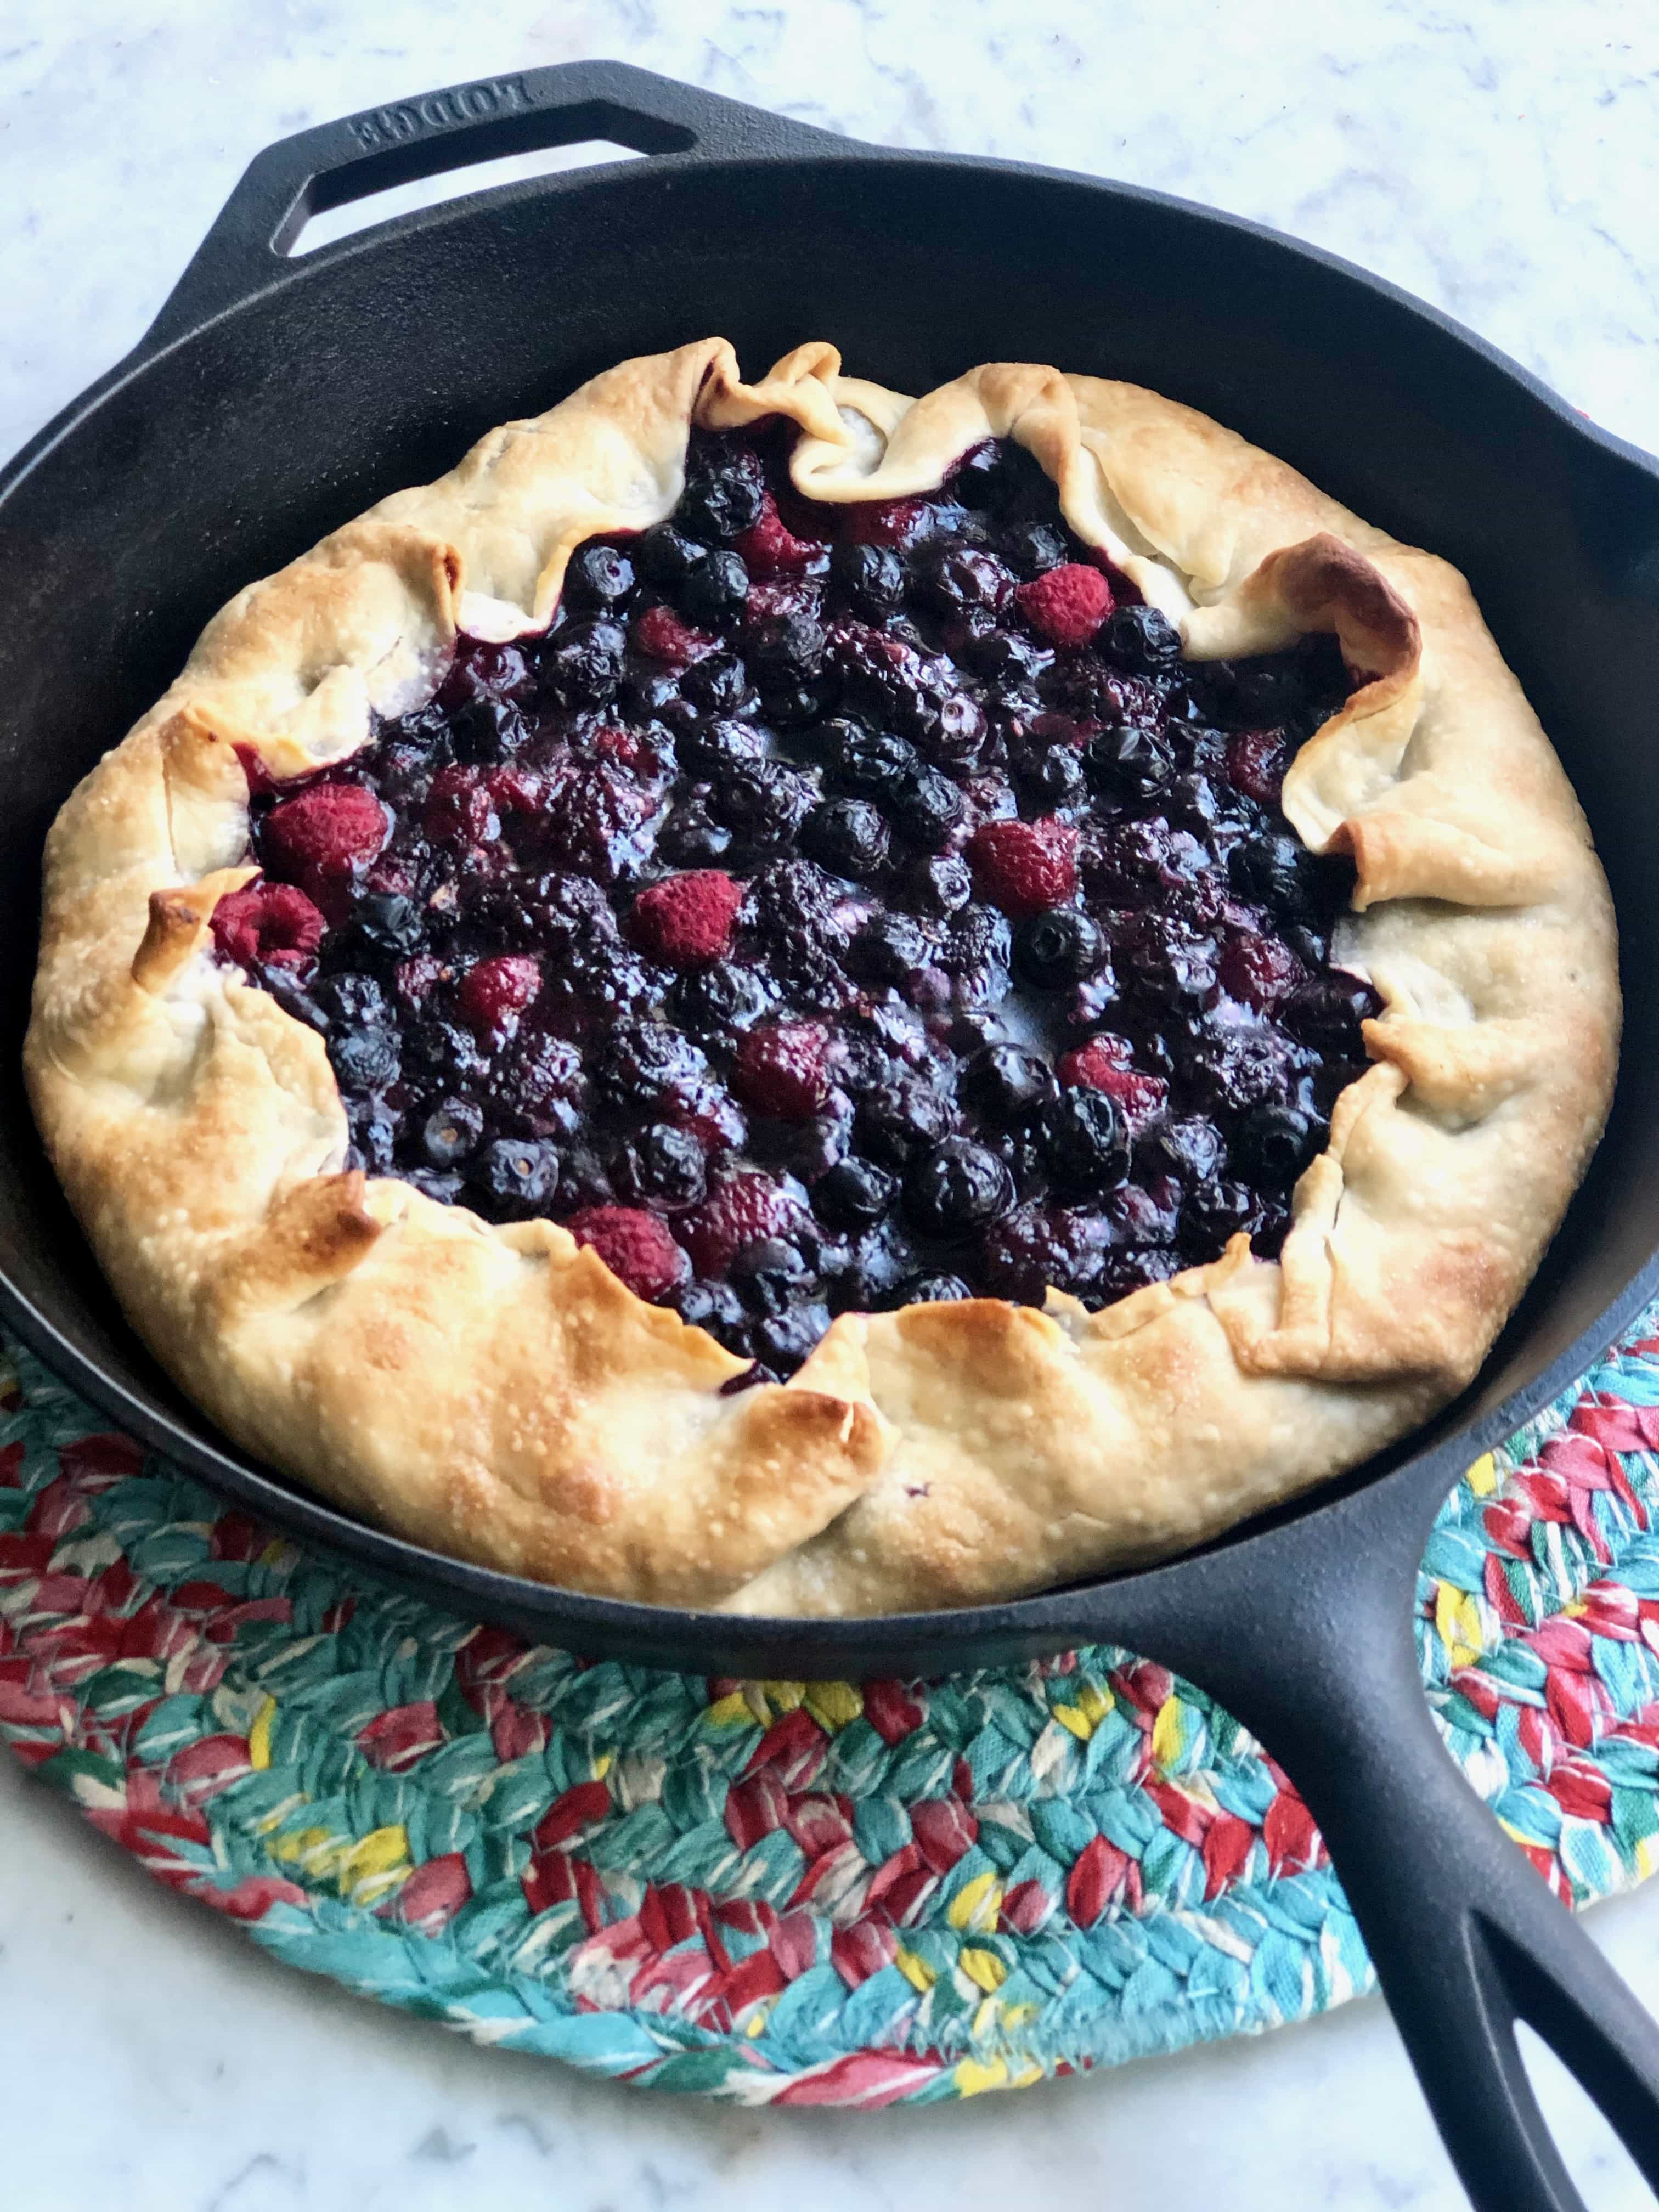 crostata in a cast iron skillet